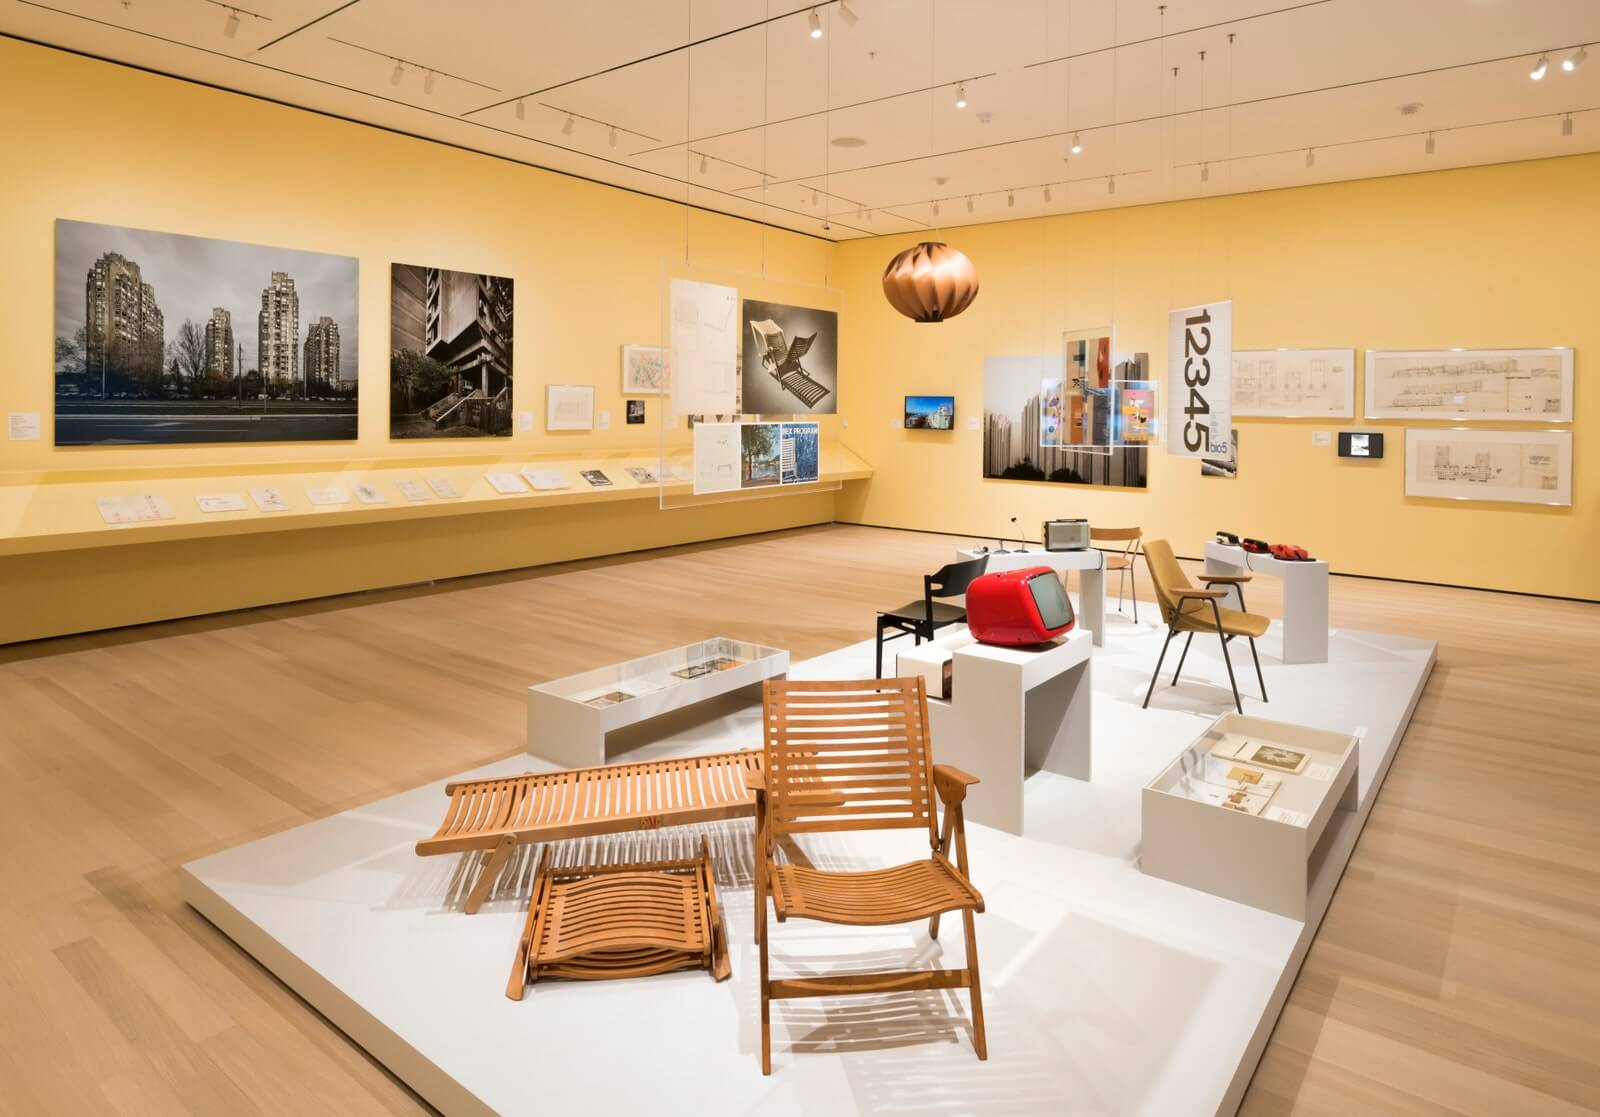 Niko Kralj included in MoMA Permanent Collection